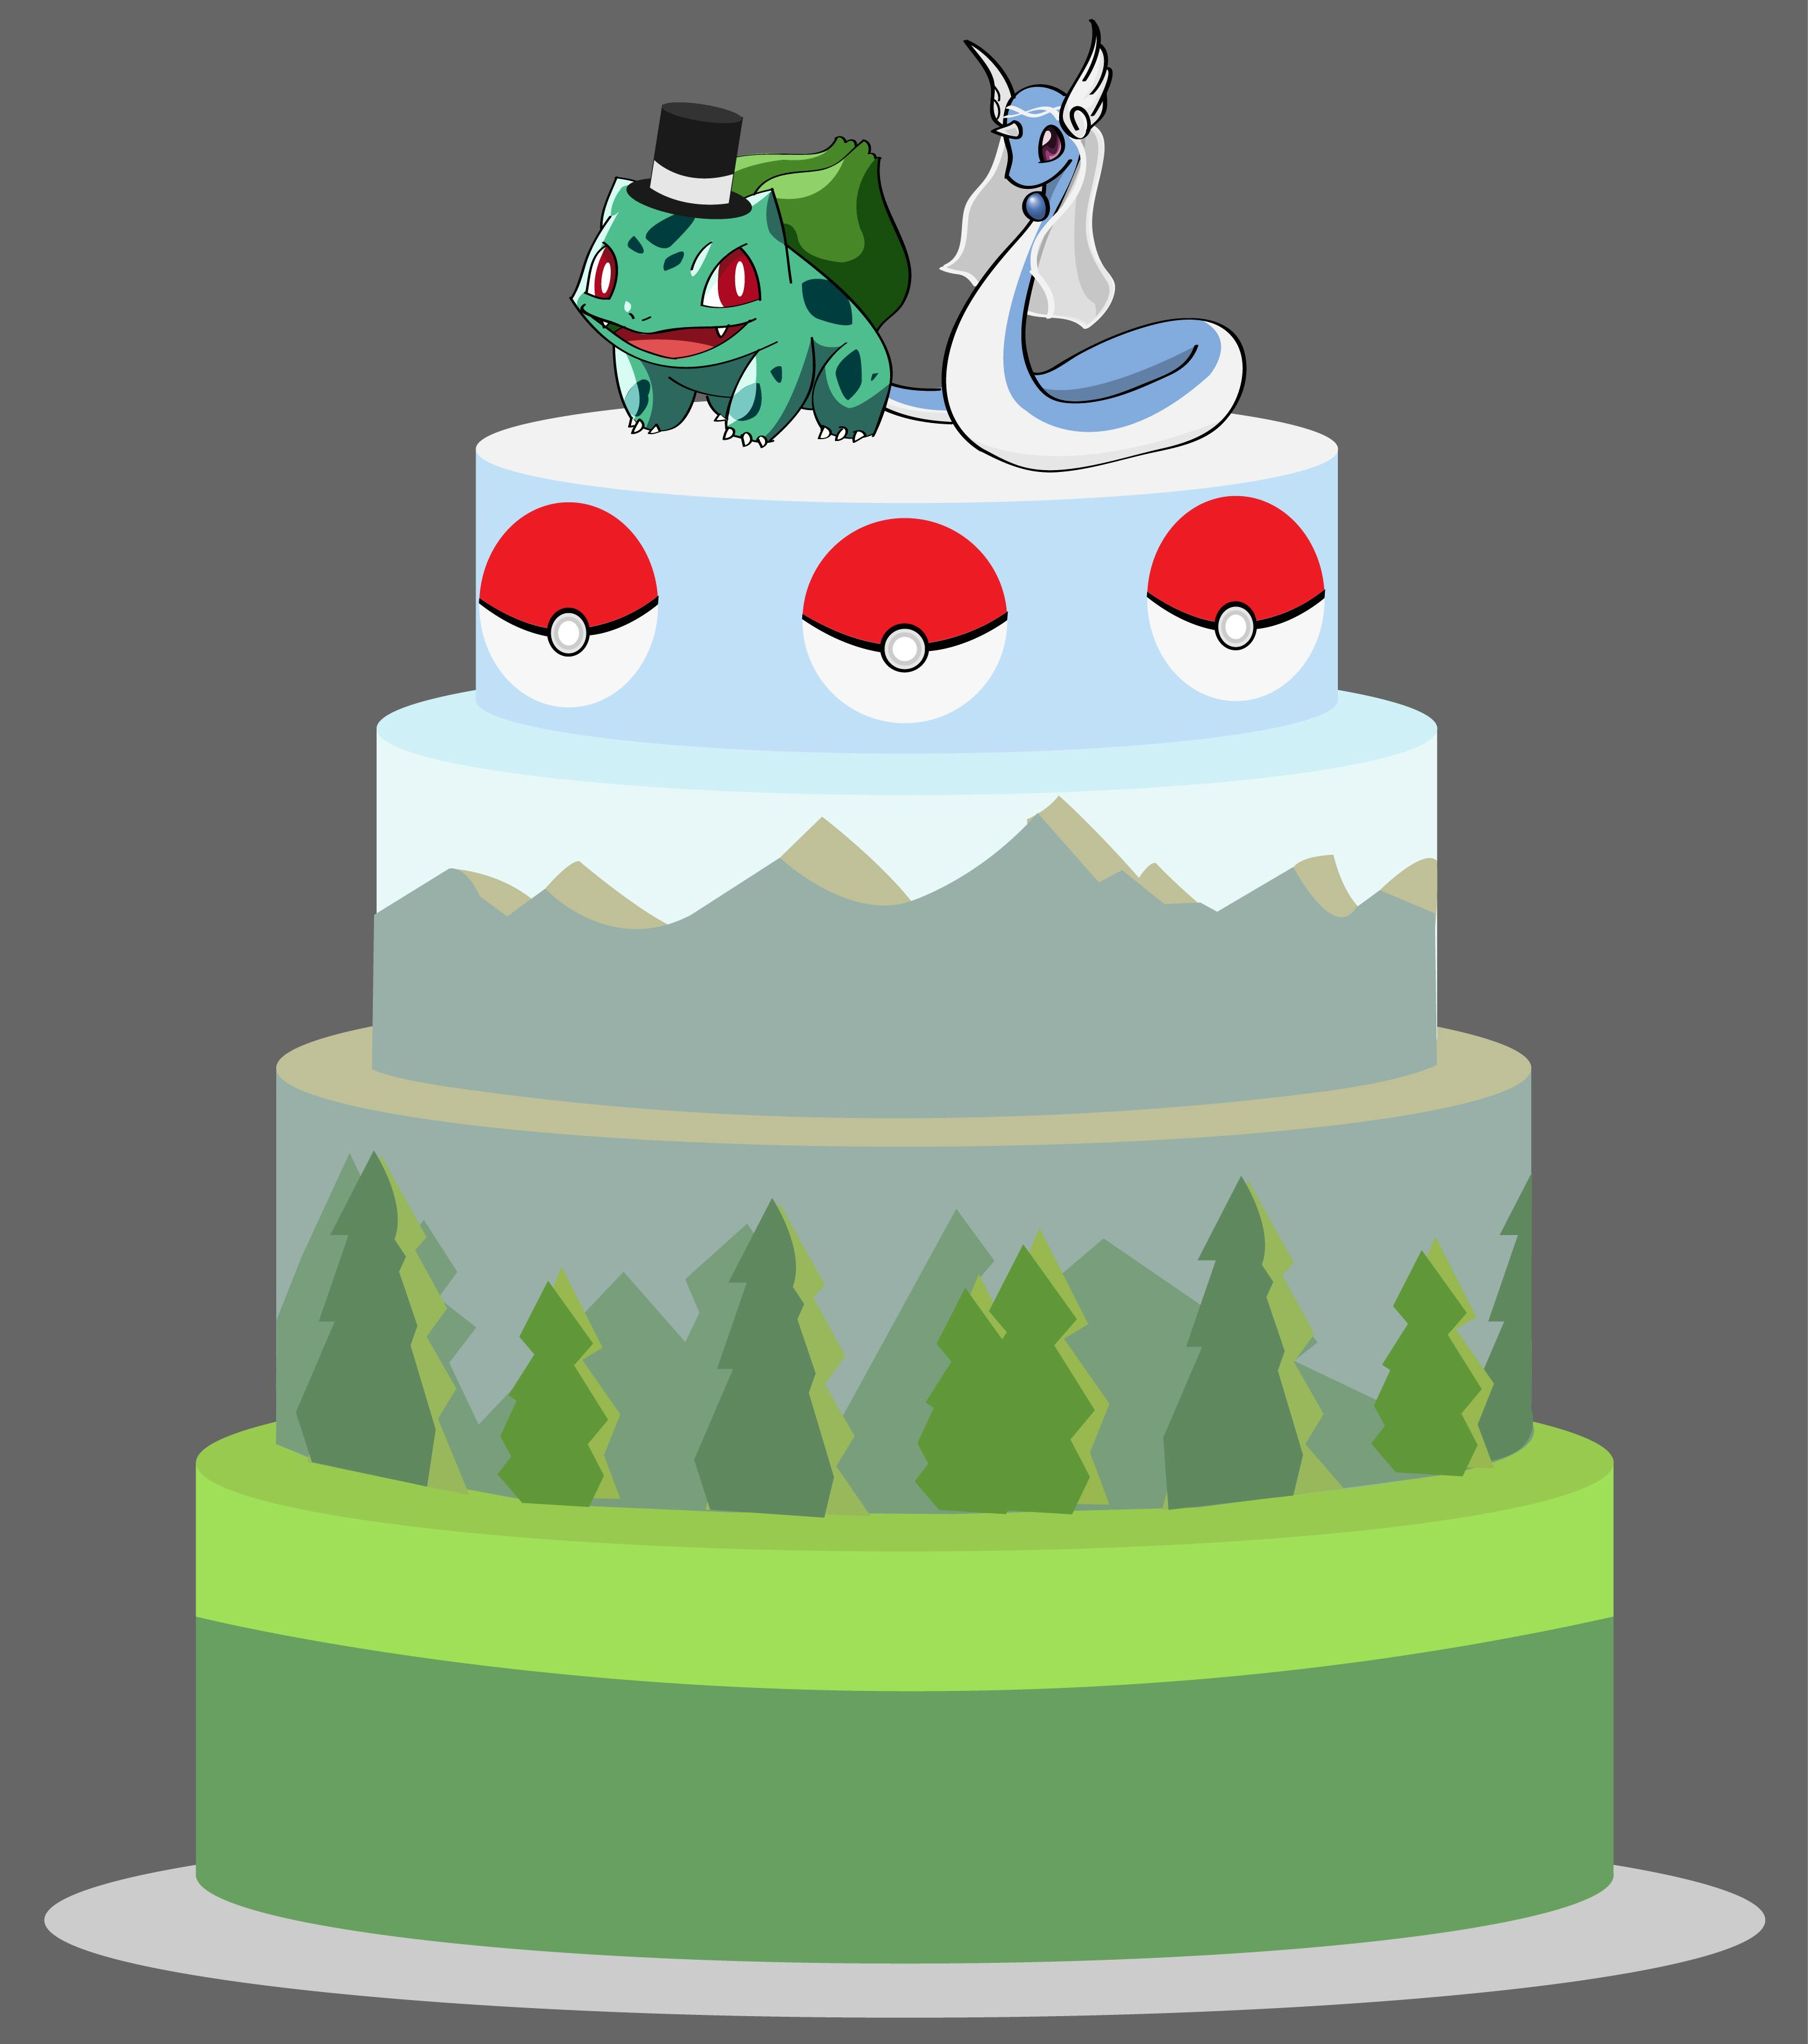 My Initial Design For Our Wedding Cake